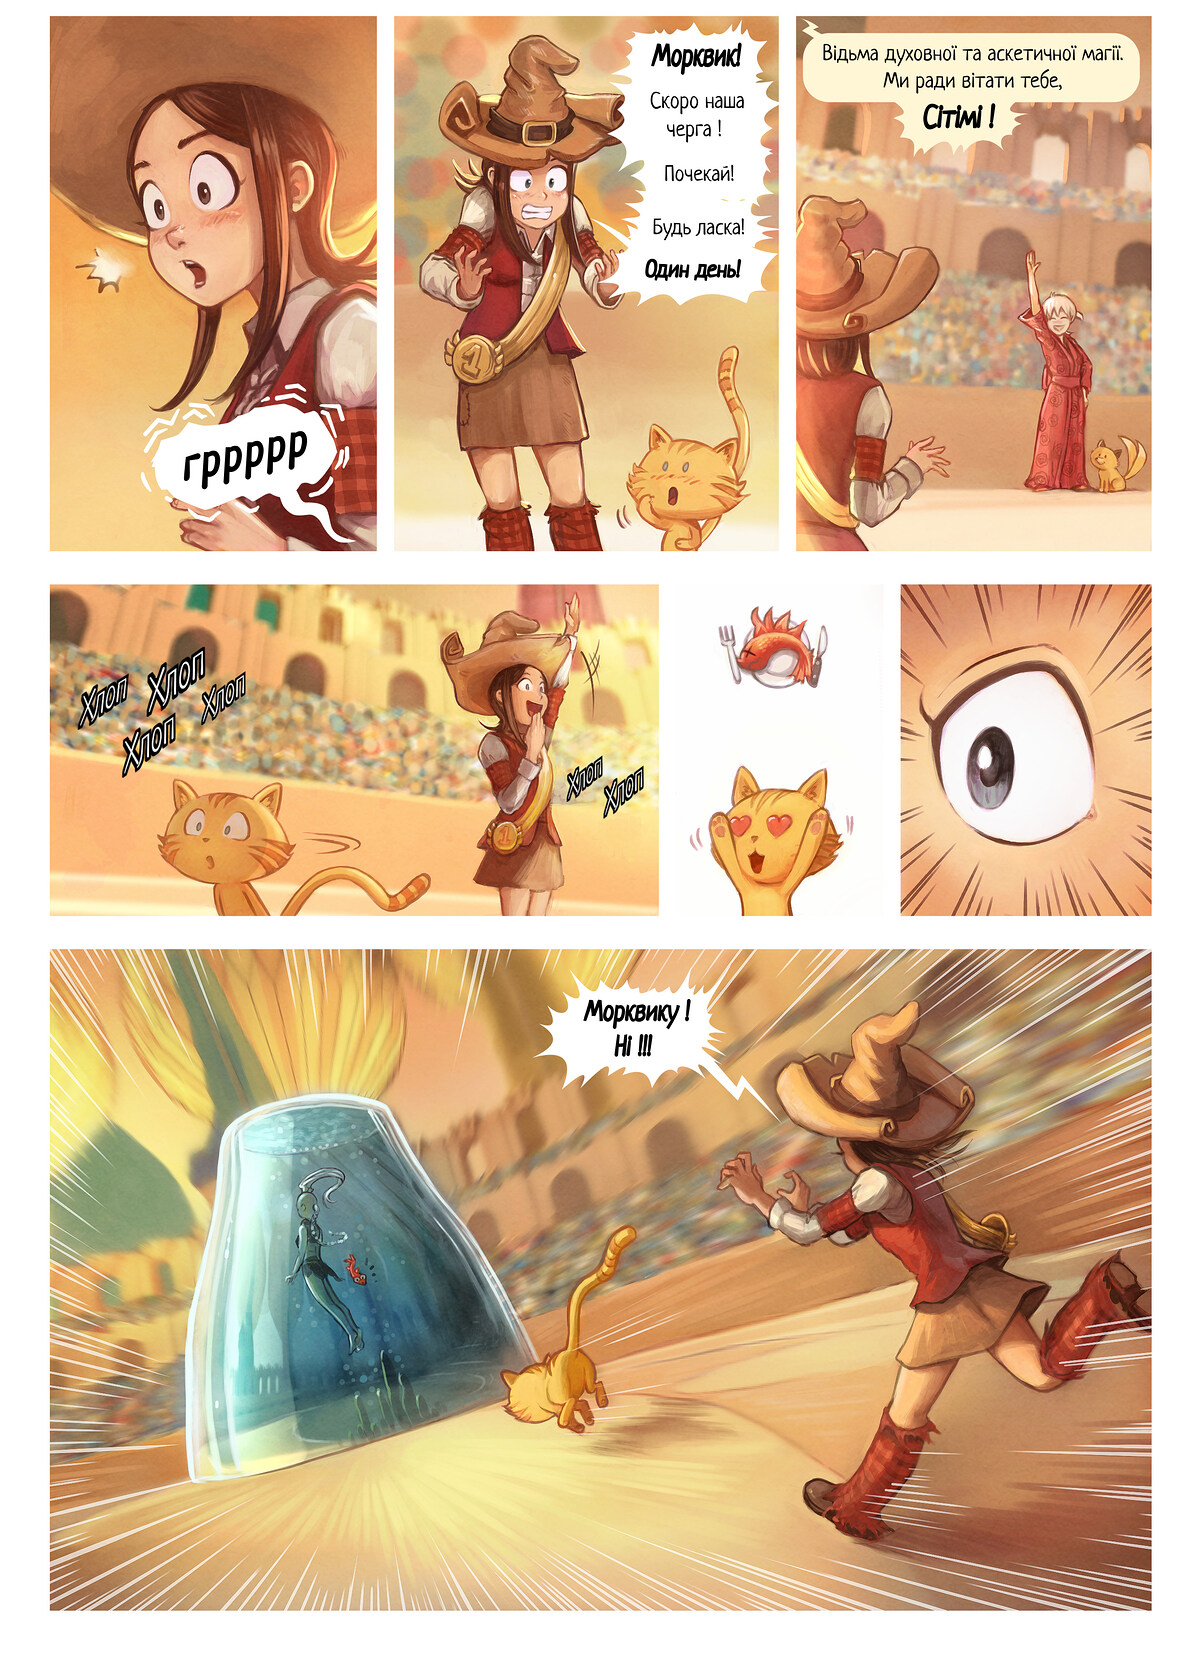 A webcomic page of Pepper&Carrot, епізод 21 [uk], стор. 5